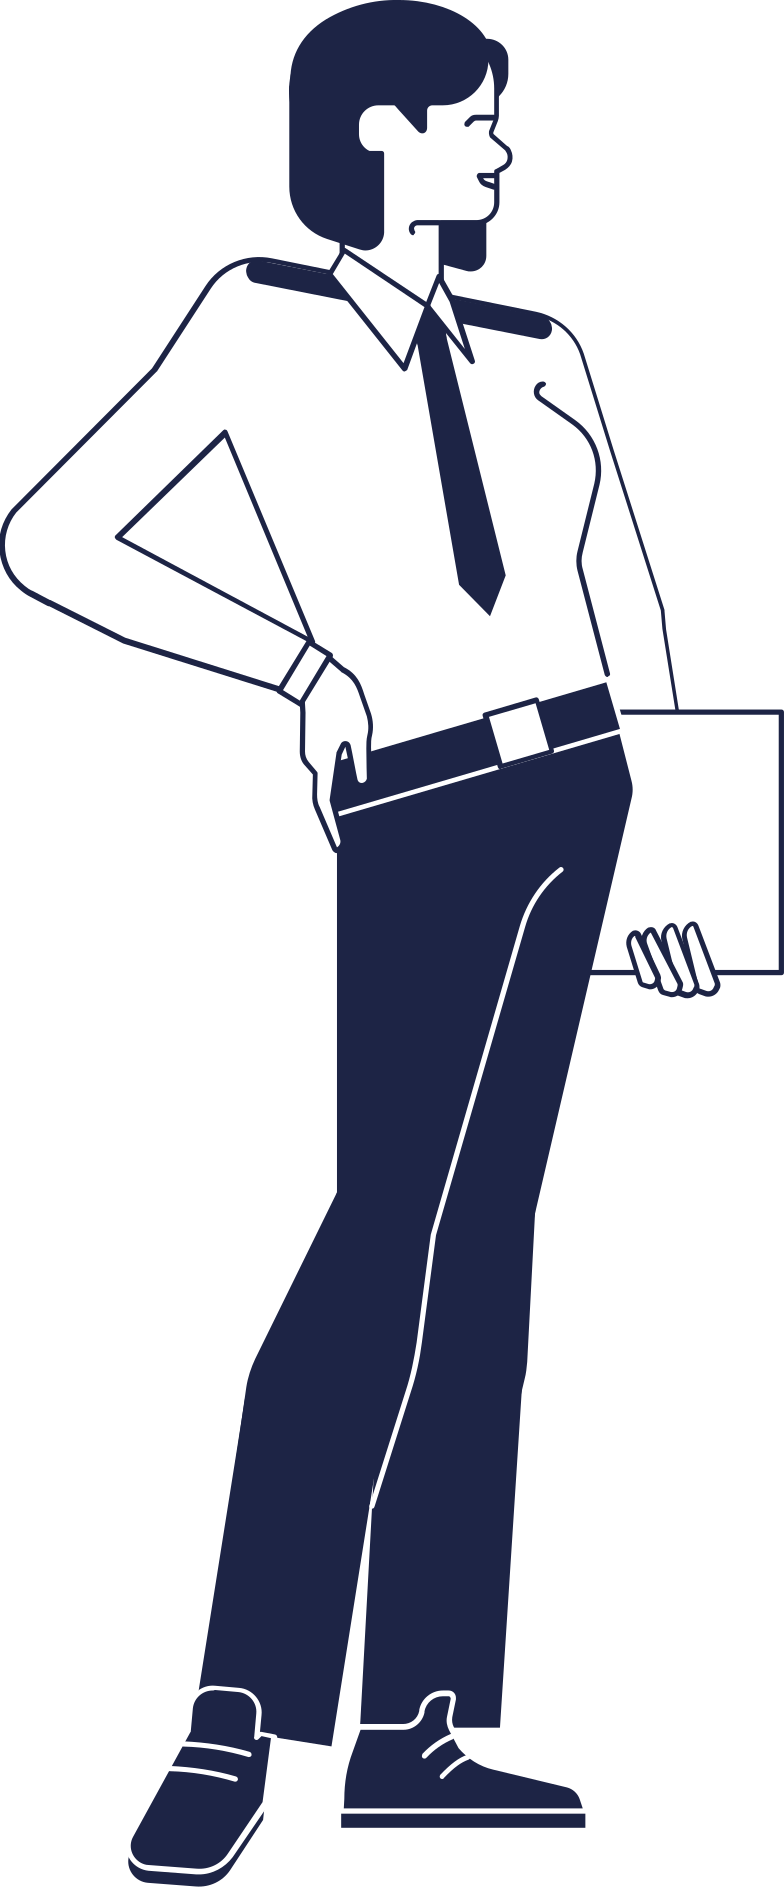 police woman Clipart illustration in PNG, SVG